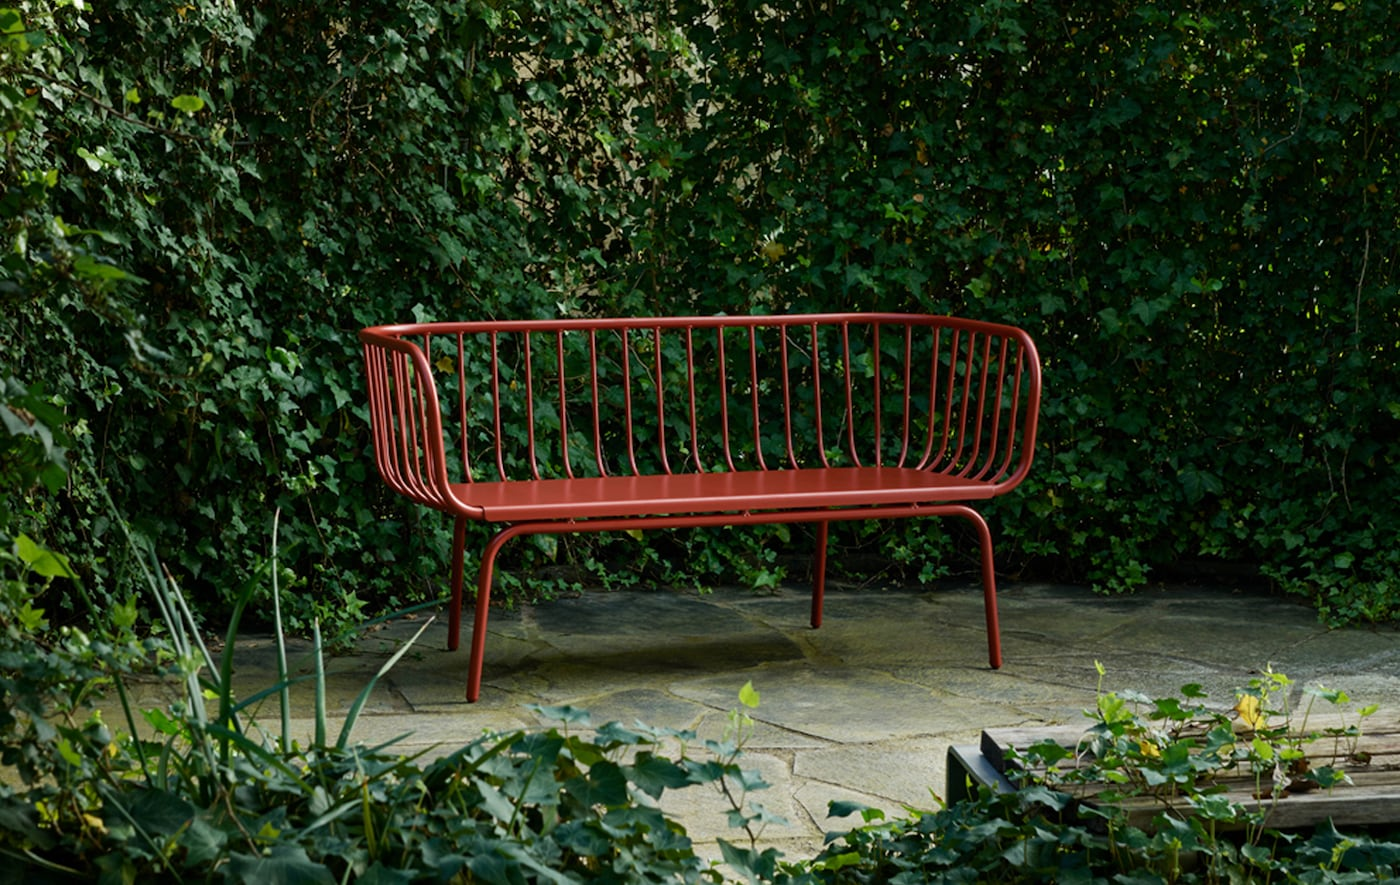 A red bench surrounded by greenery on a paved area.